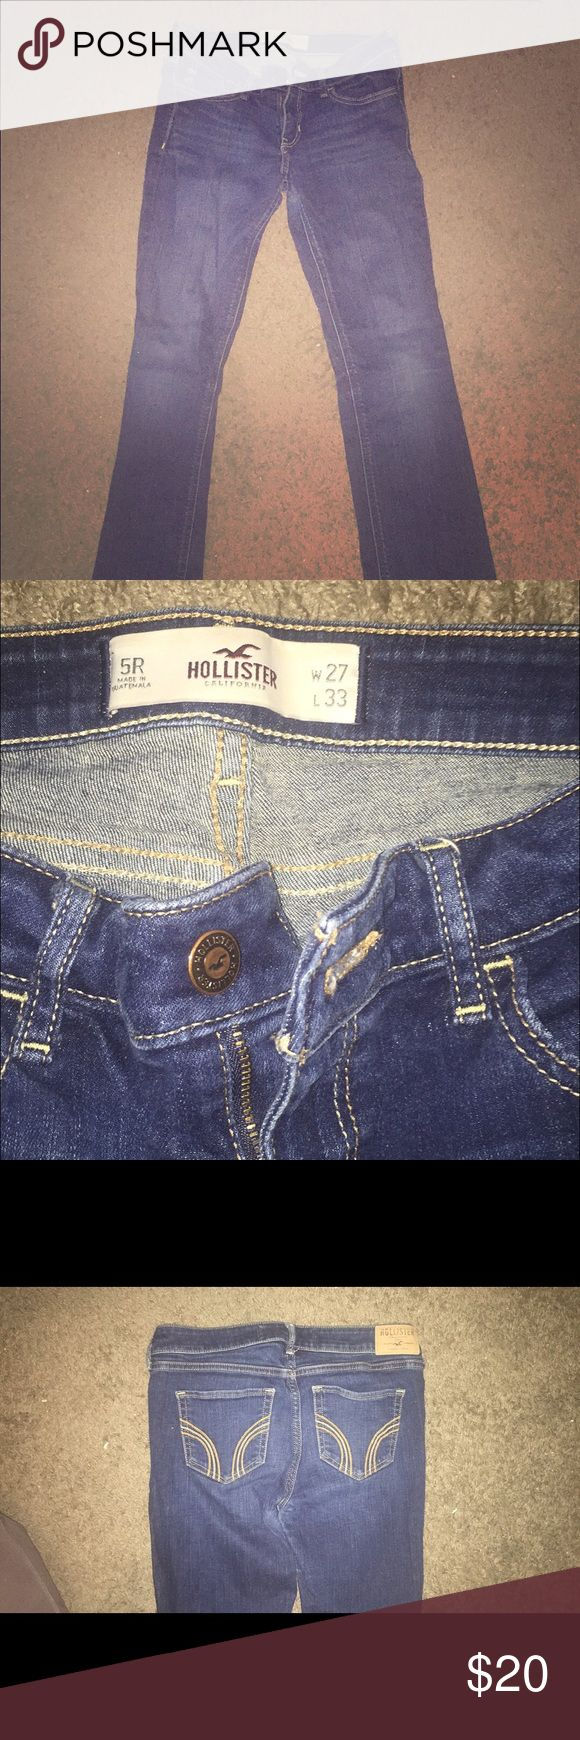 Hollister Jeans in prime condition! Great Item! Excellent condition hollister Jeans. Look brand new. Size 5R. 33Lx27W. Medium/dark wash no holes. Hollister Jeans Boot Cut